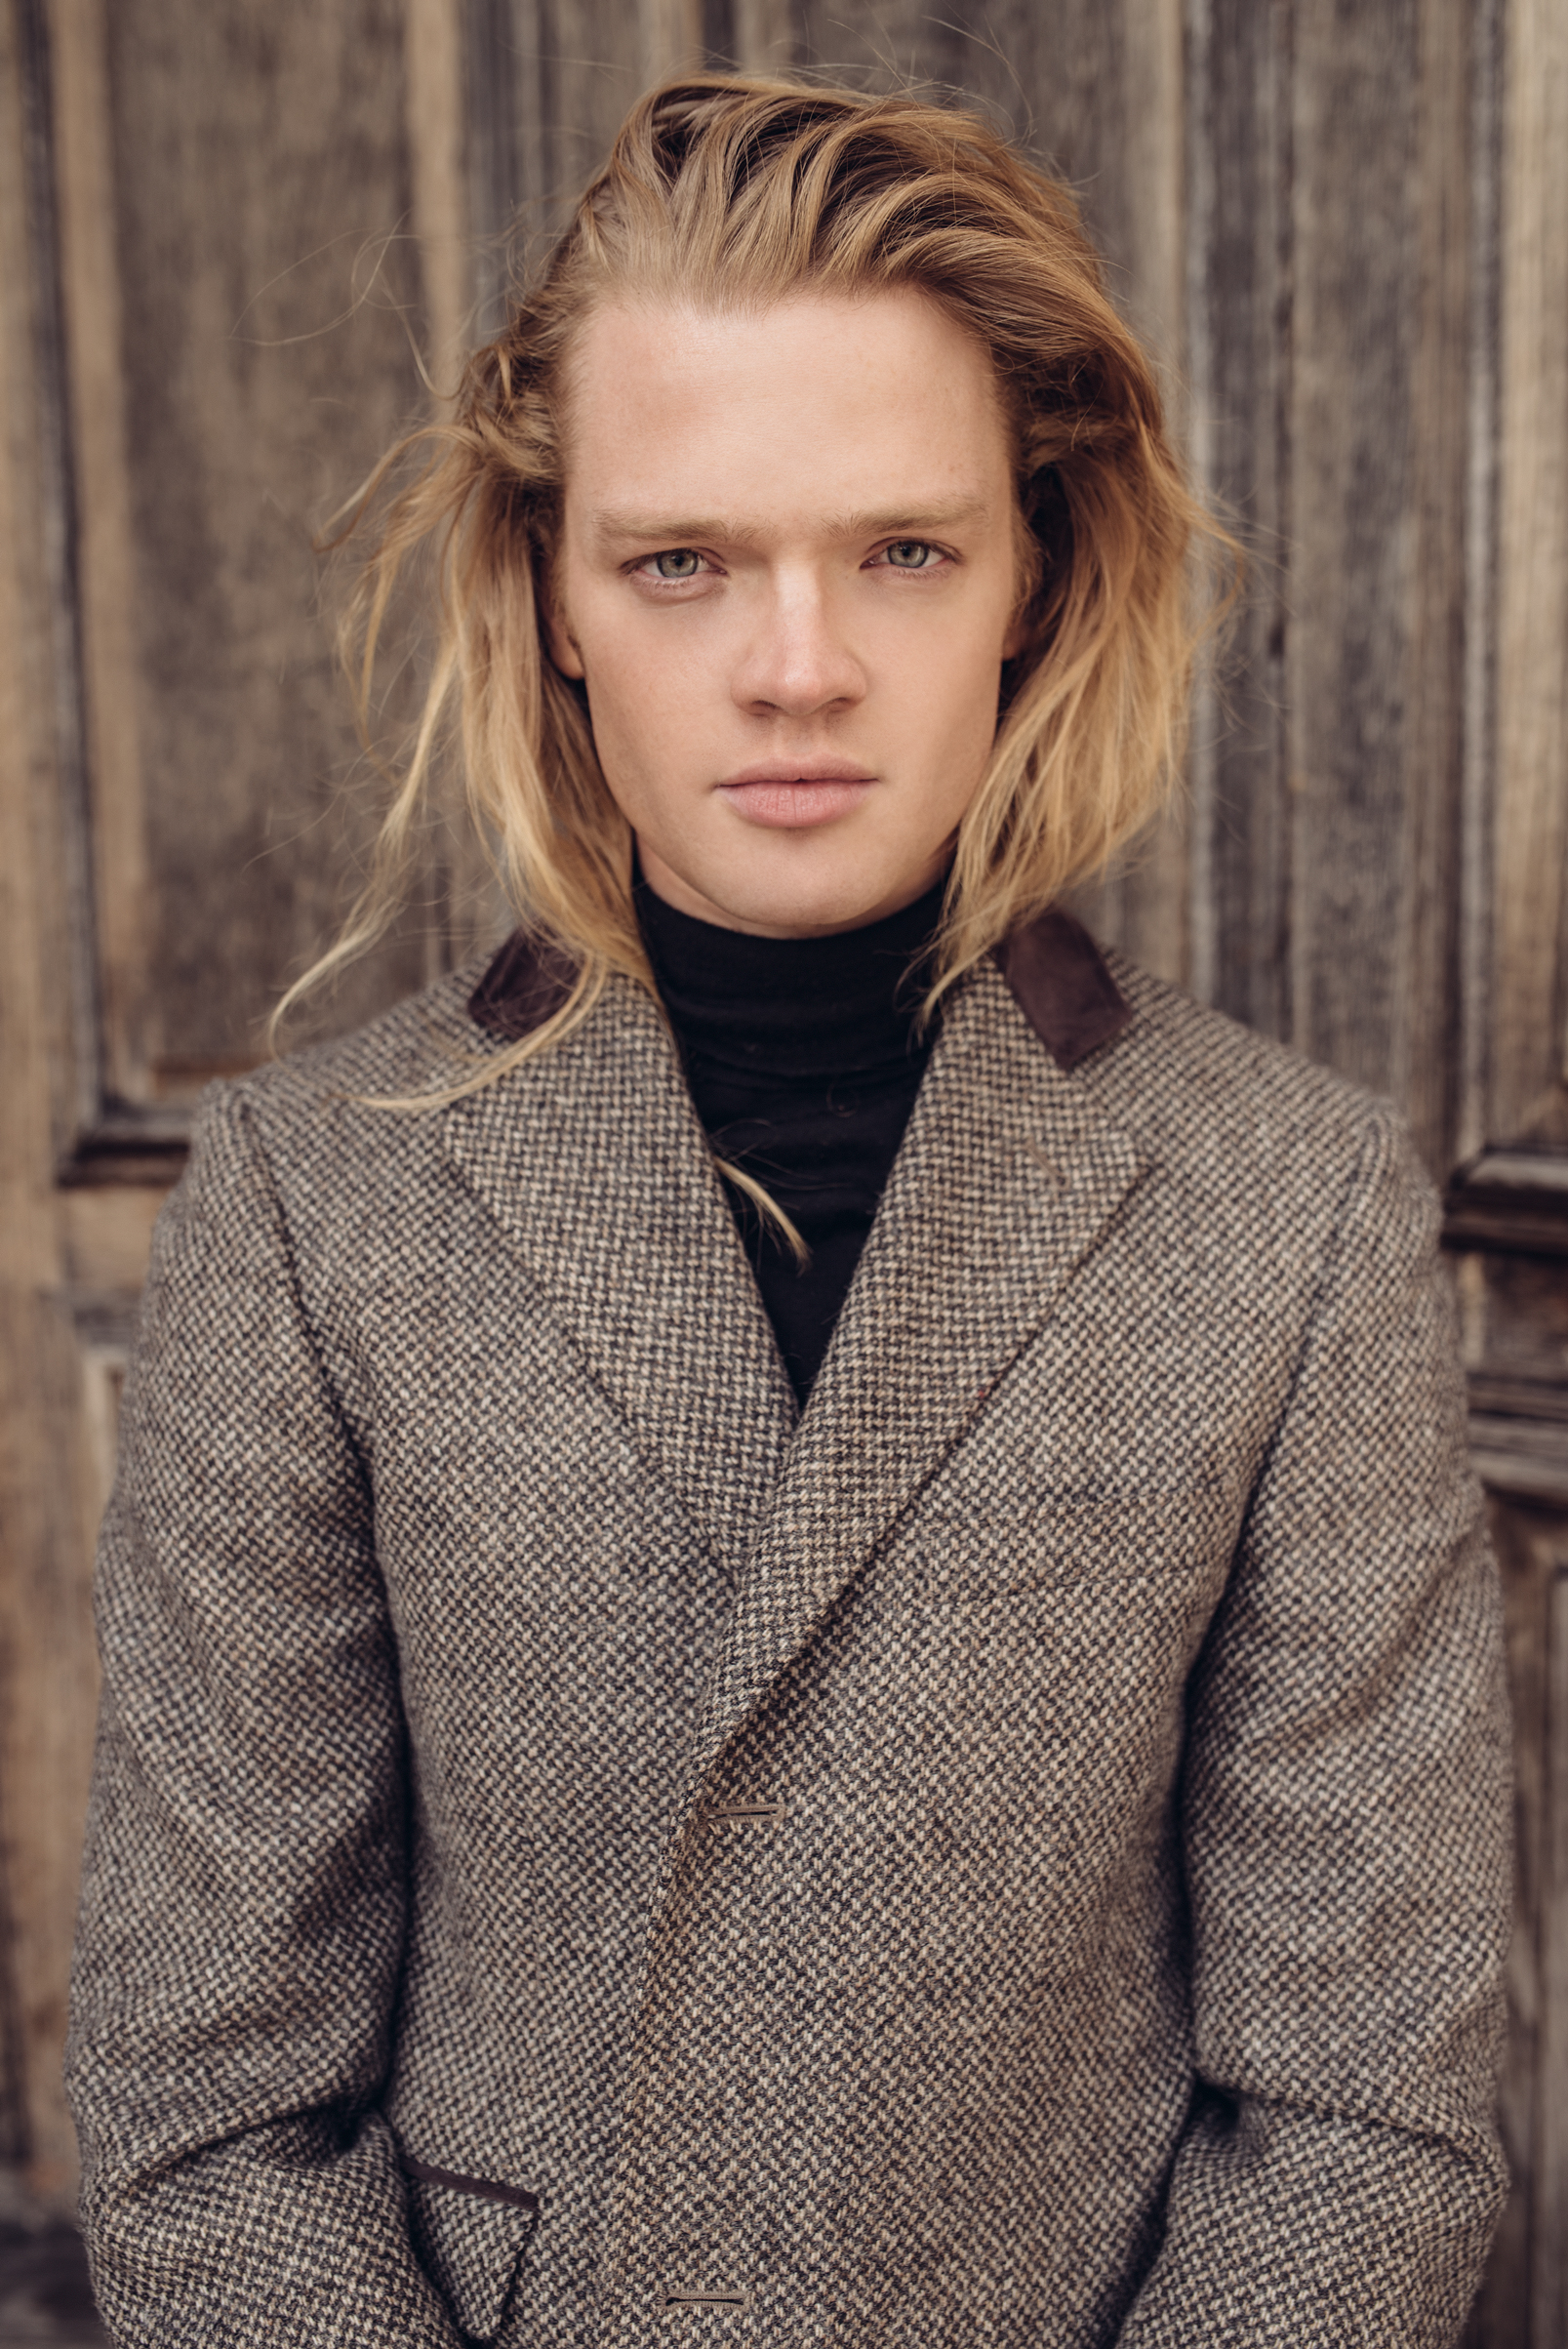 Fredrik Ferrier - Made in Chelsea